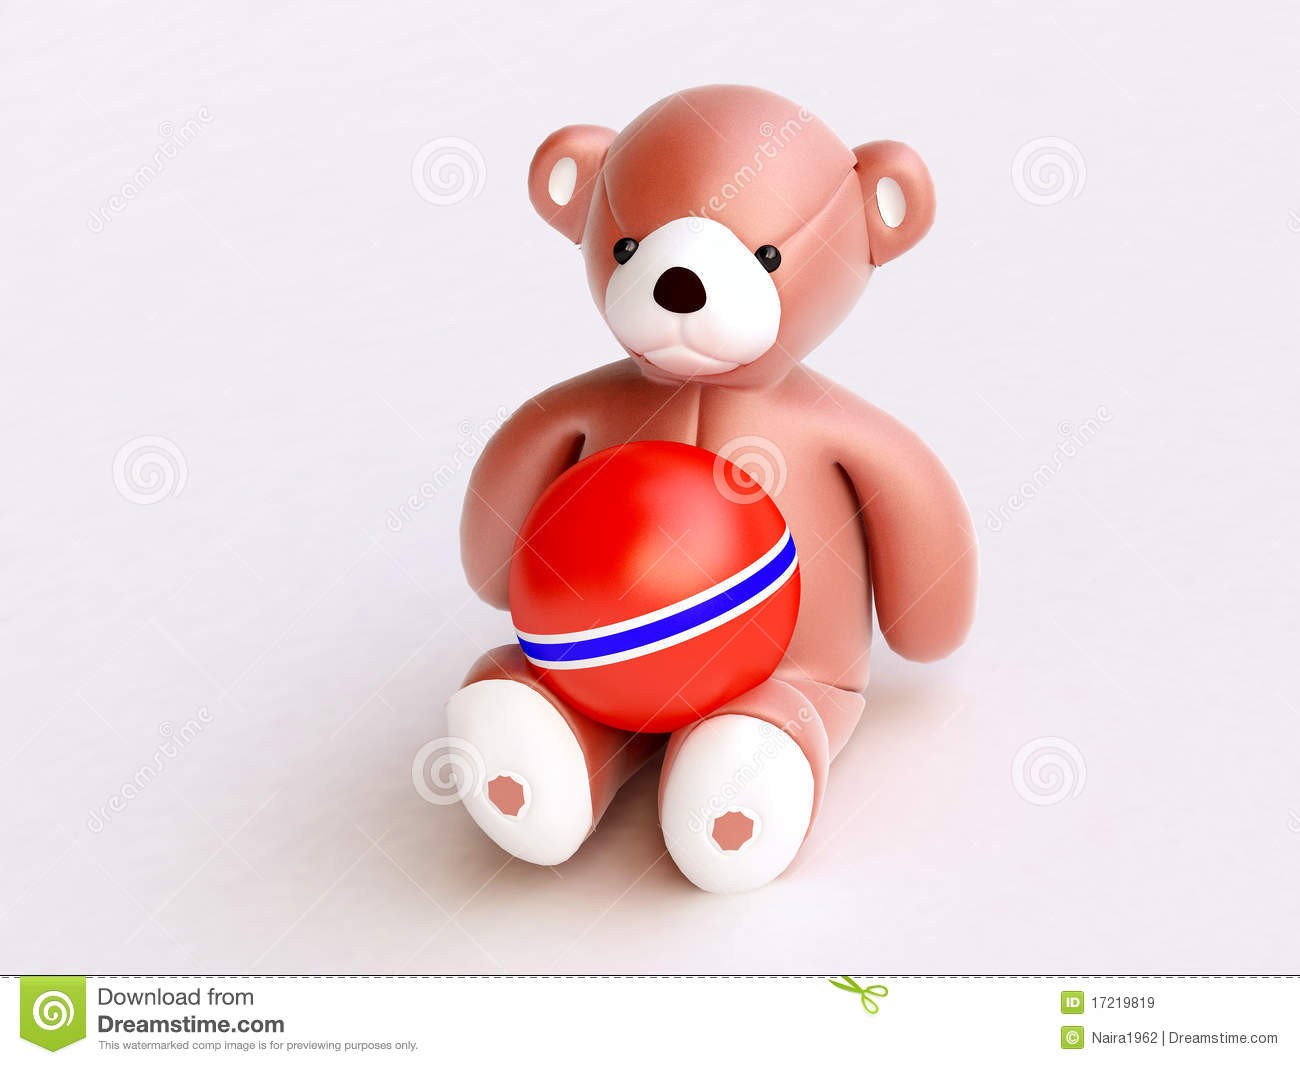 Red Ball Toy : Toy bear with red ball on knees royalty free stock images